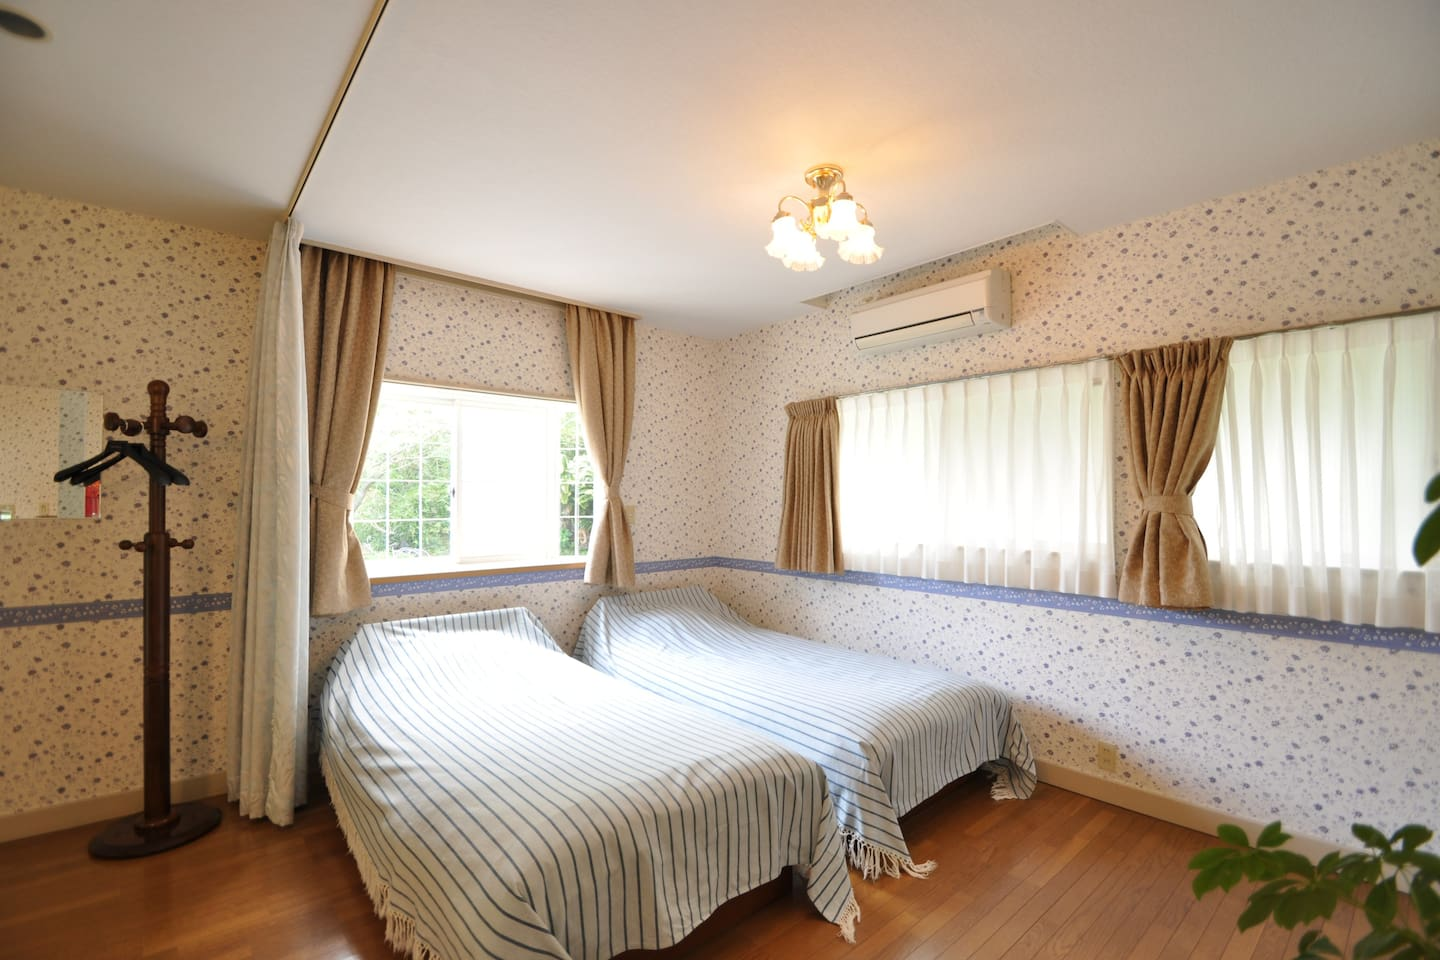 There is 2 single bed